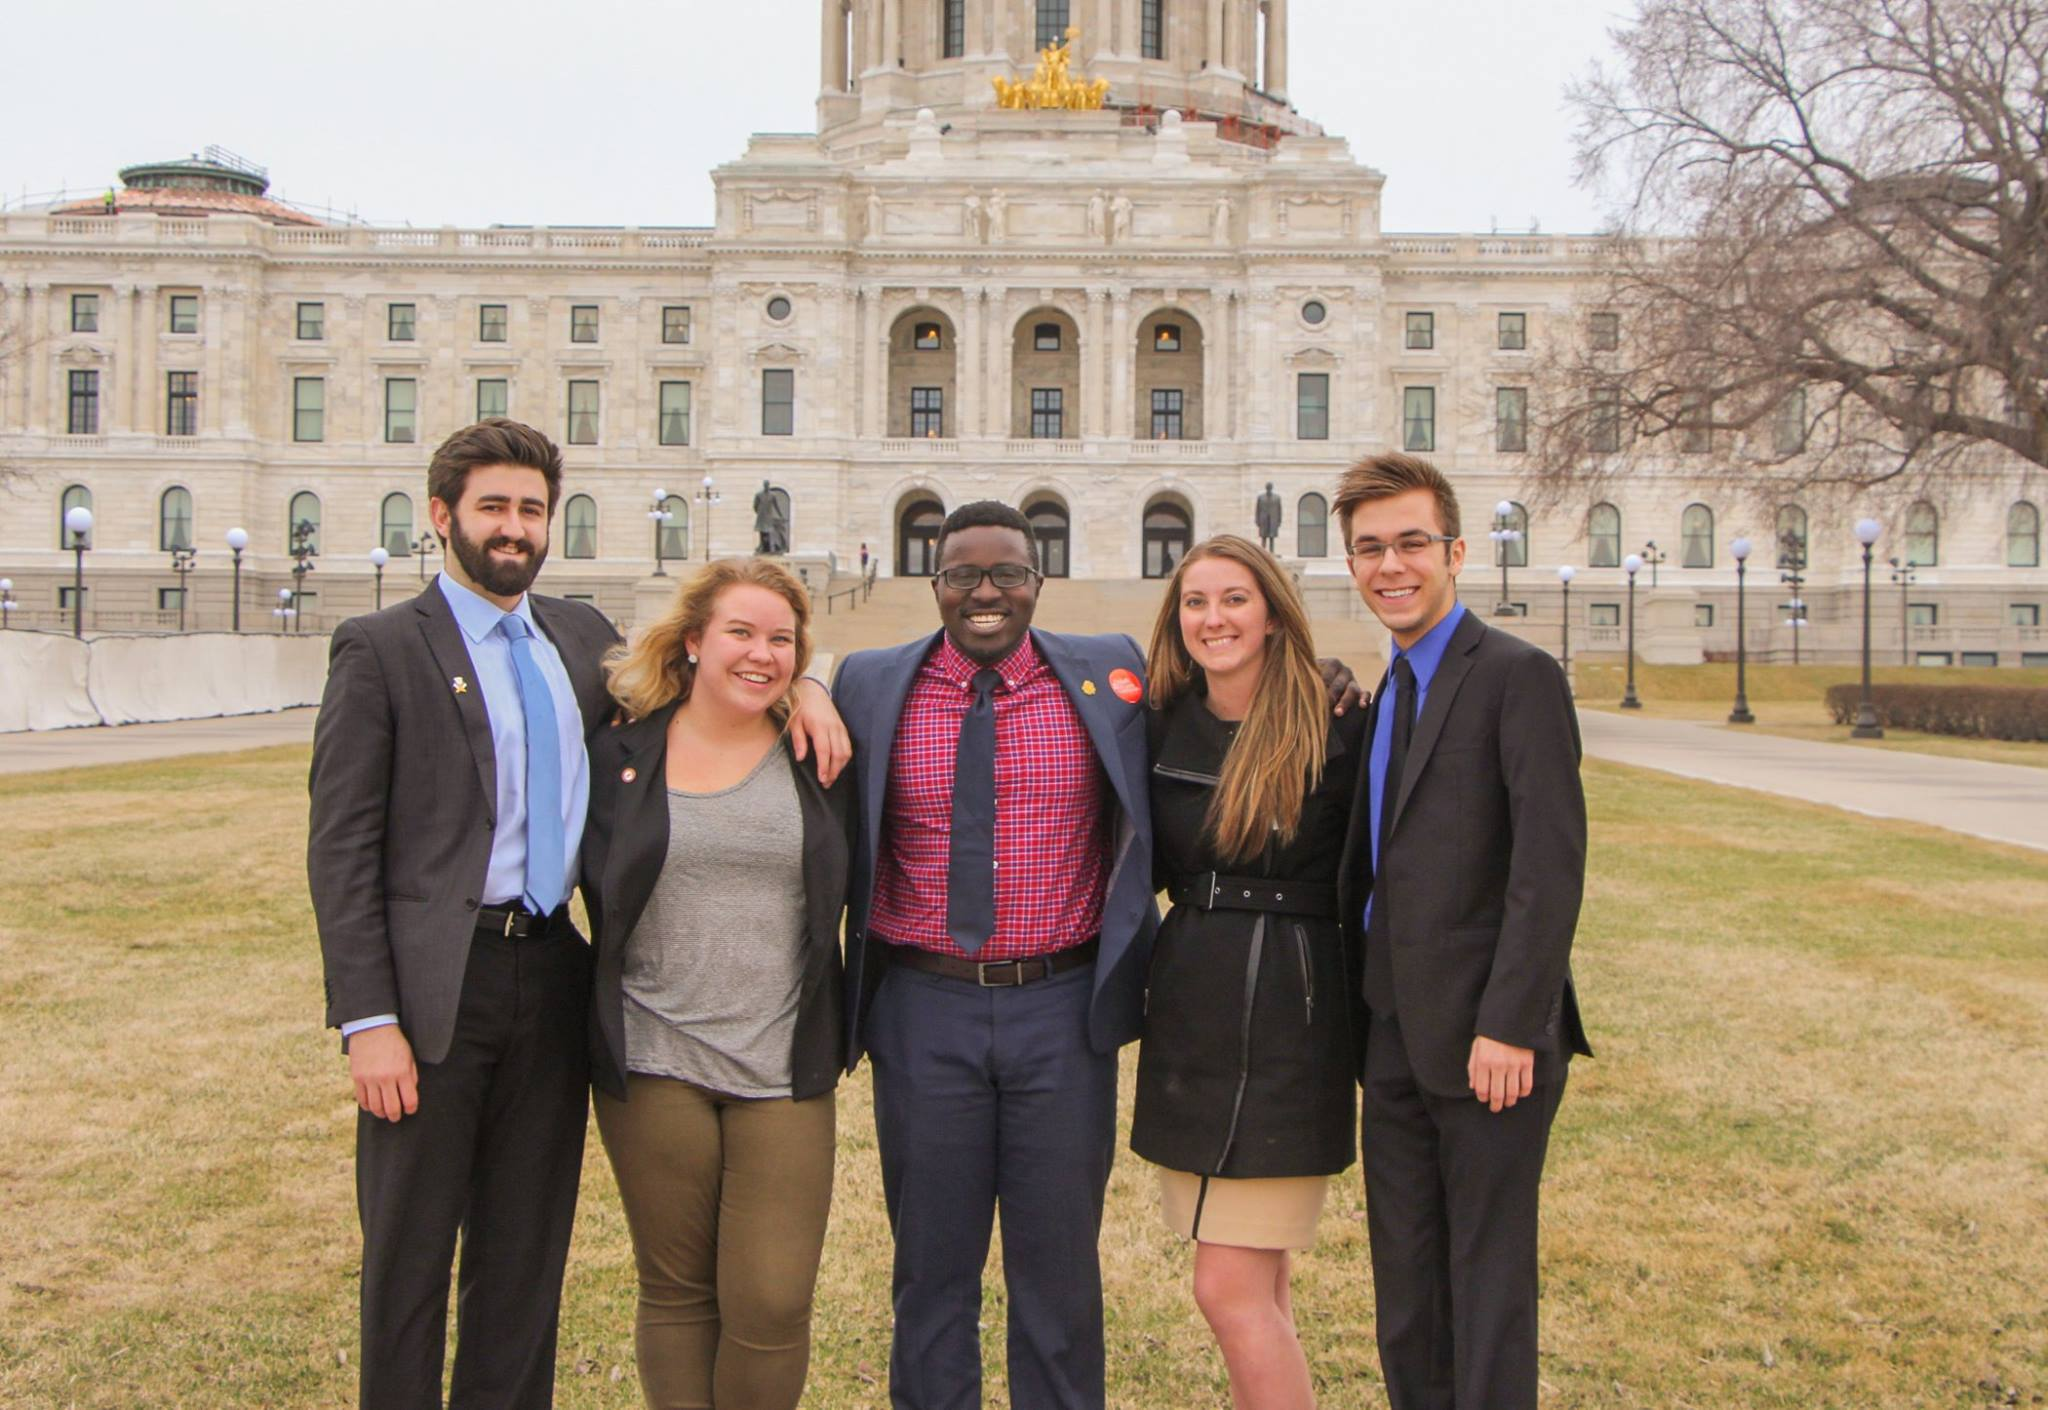 UMD SA members at the Minnesota State Capitol in 2017. From left: Mitchell Farmer-Lies, Mati Hanson, Mike Kenyanya, Caitlyn Walker and Cameron Lulic. Photo Courtesy of Student Association.